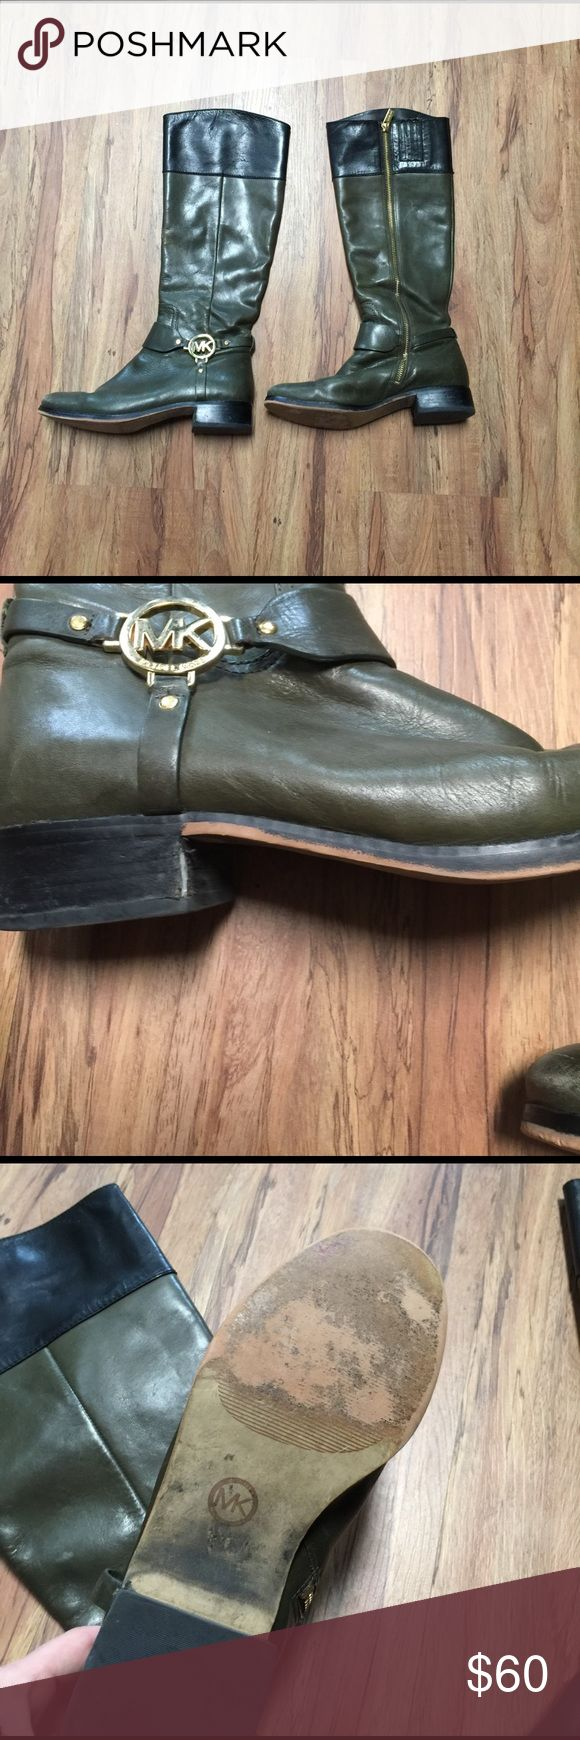 Michael Kors leather riding boots size 8 Definitely have been worn as shown in the pictures. Still have a lot of life left in them Michael Kors Shoes Winter & Rain Boots